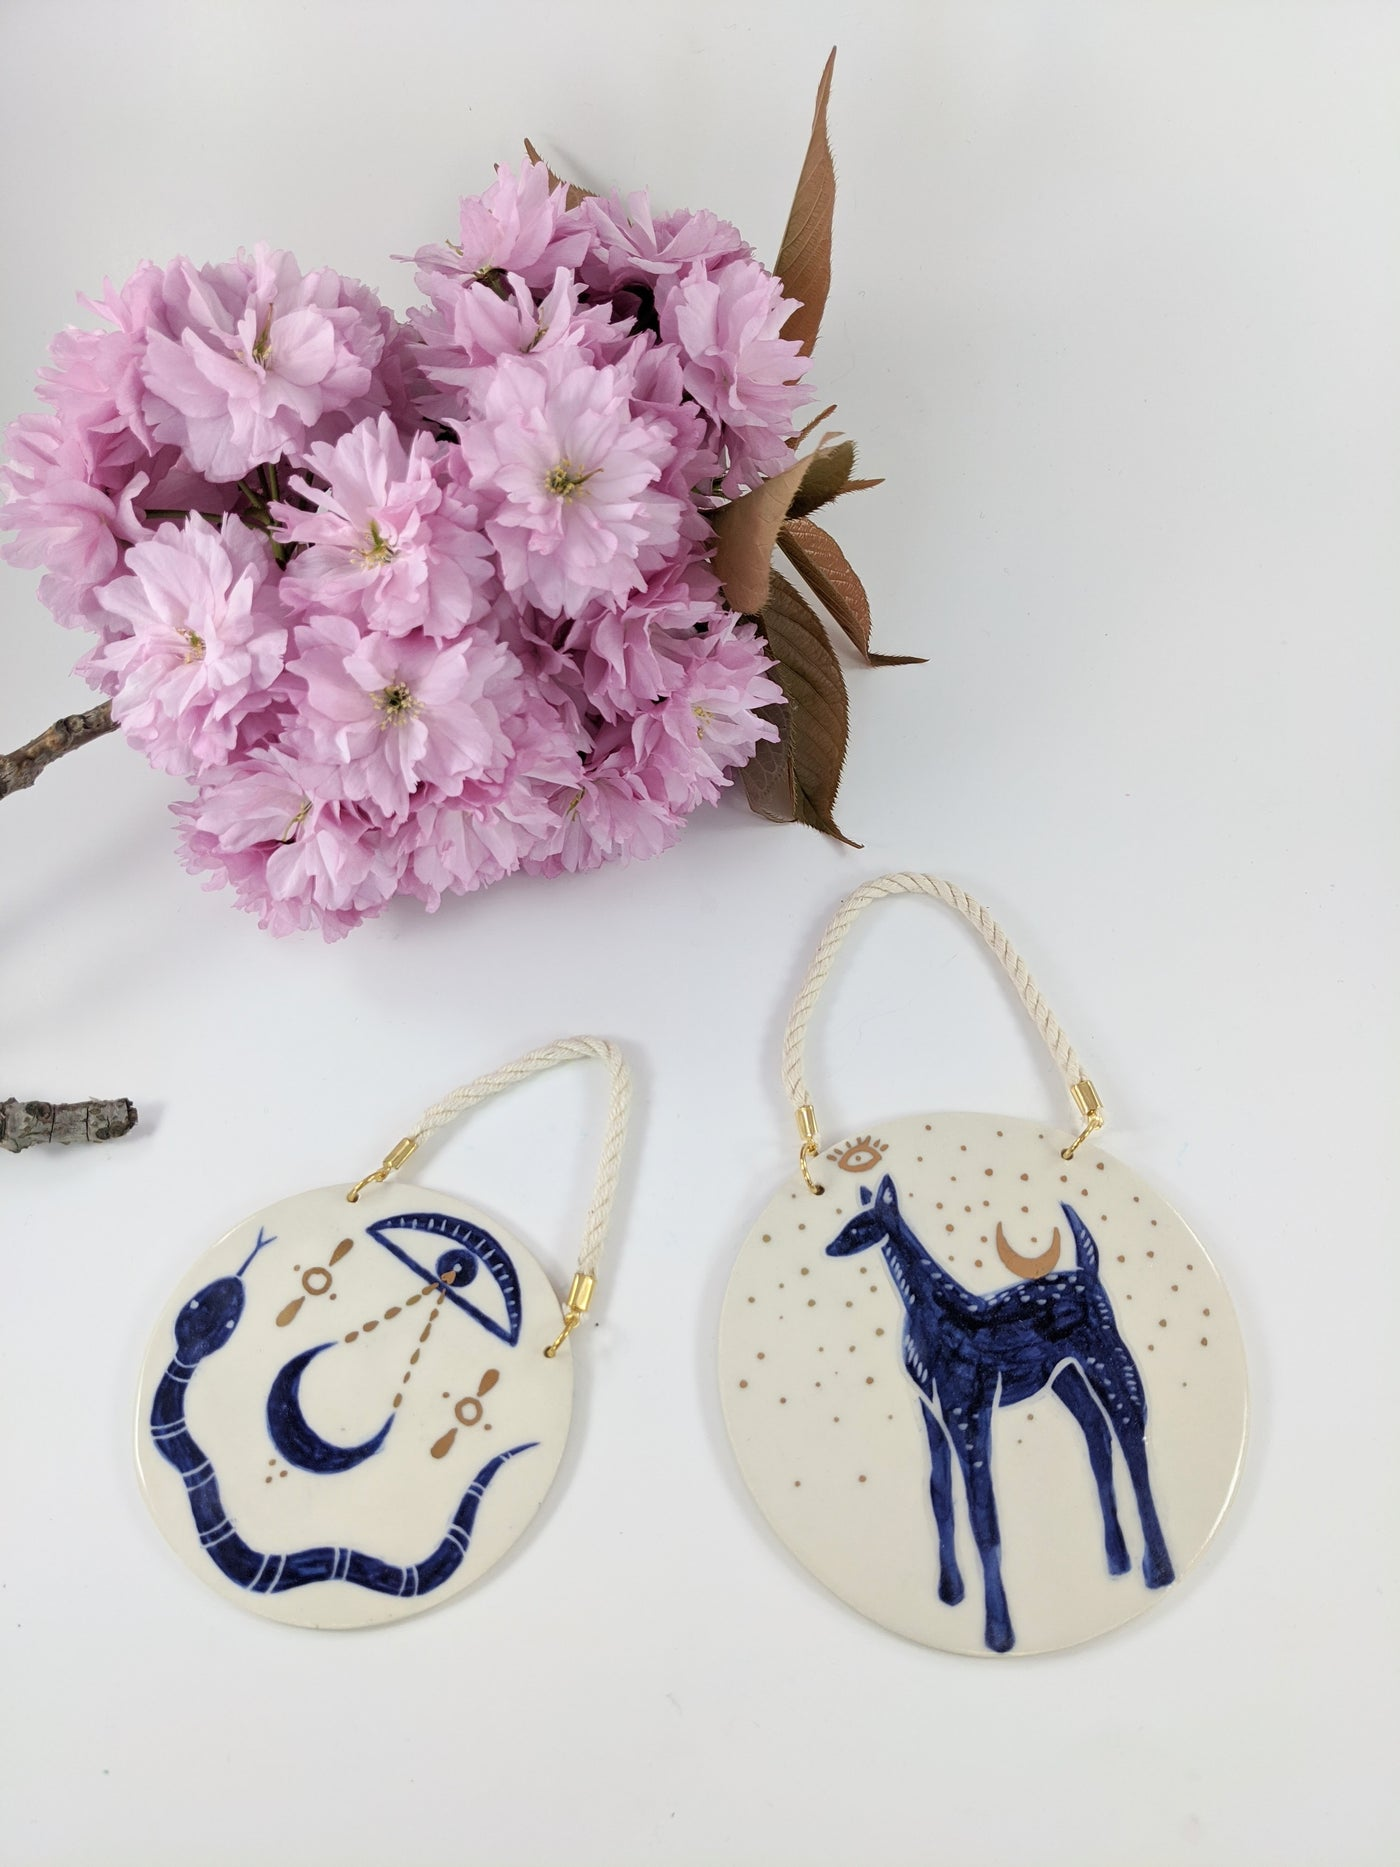 Ceramic wall charm by Mana Dejah available at Local Assembly